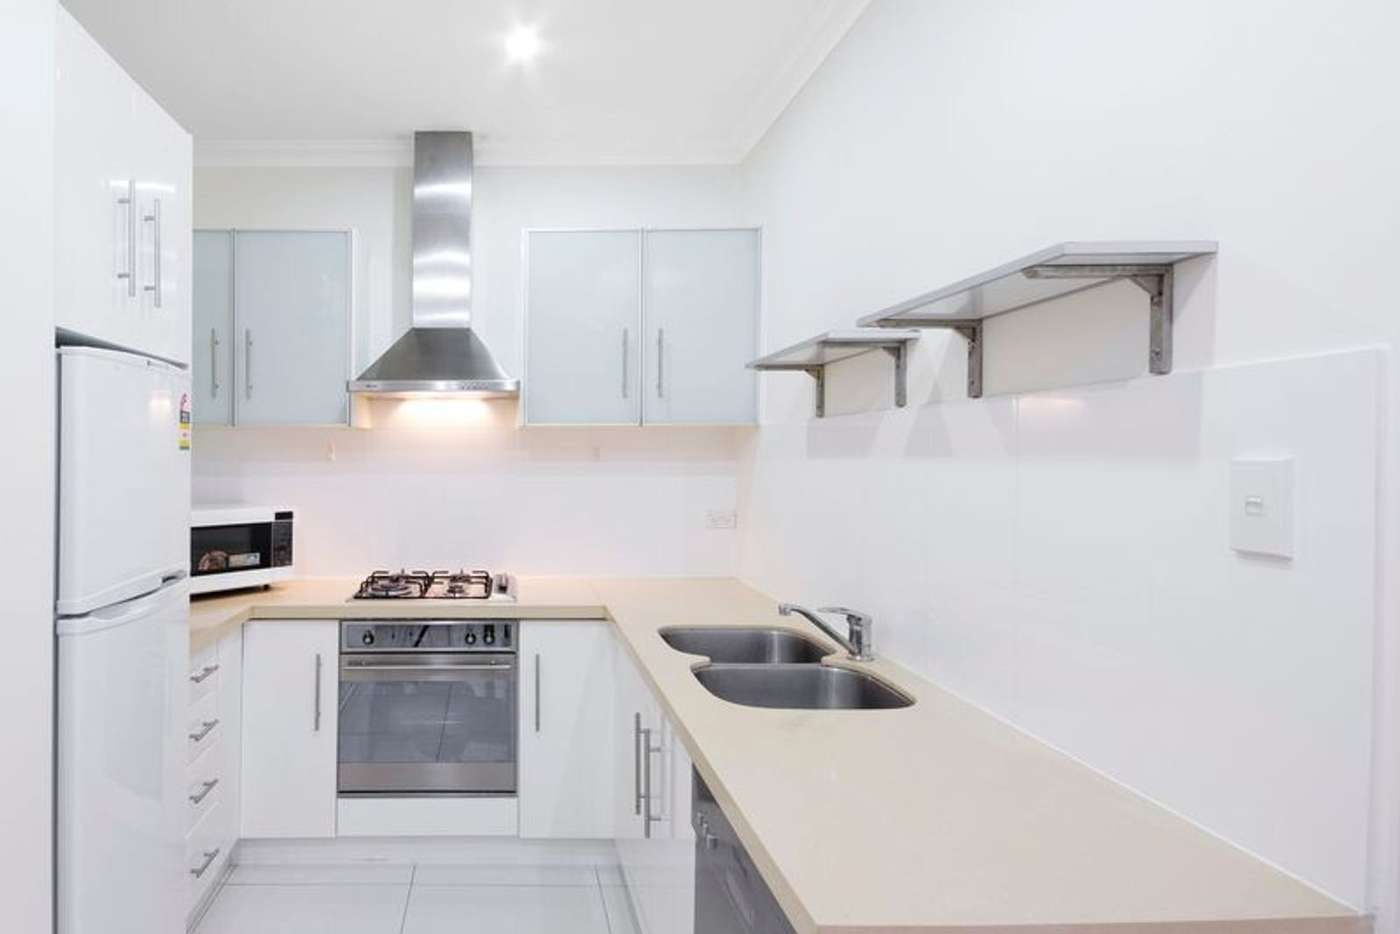 Main view of Homely apartment listing, 509/39 Grenfell Street, Adelaide SA 5000